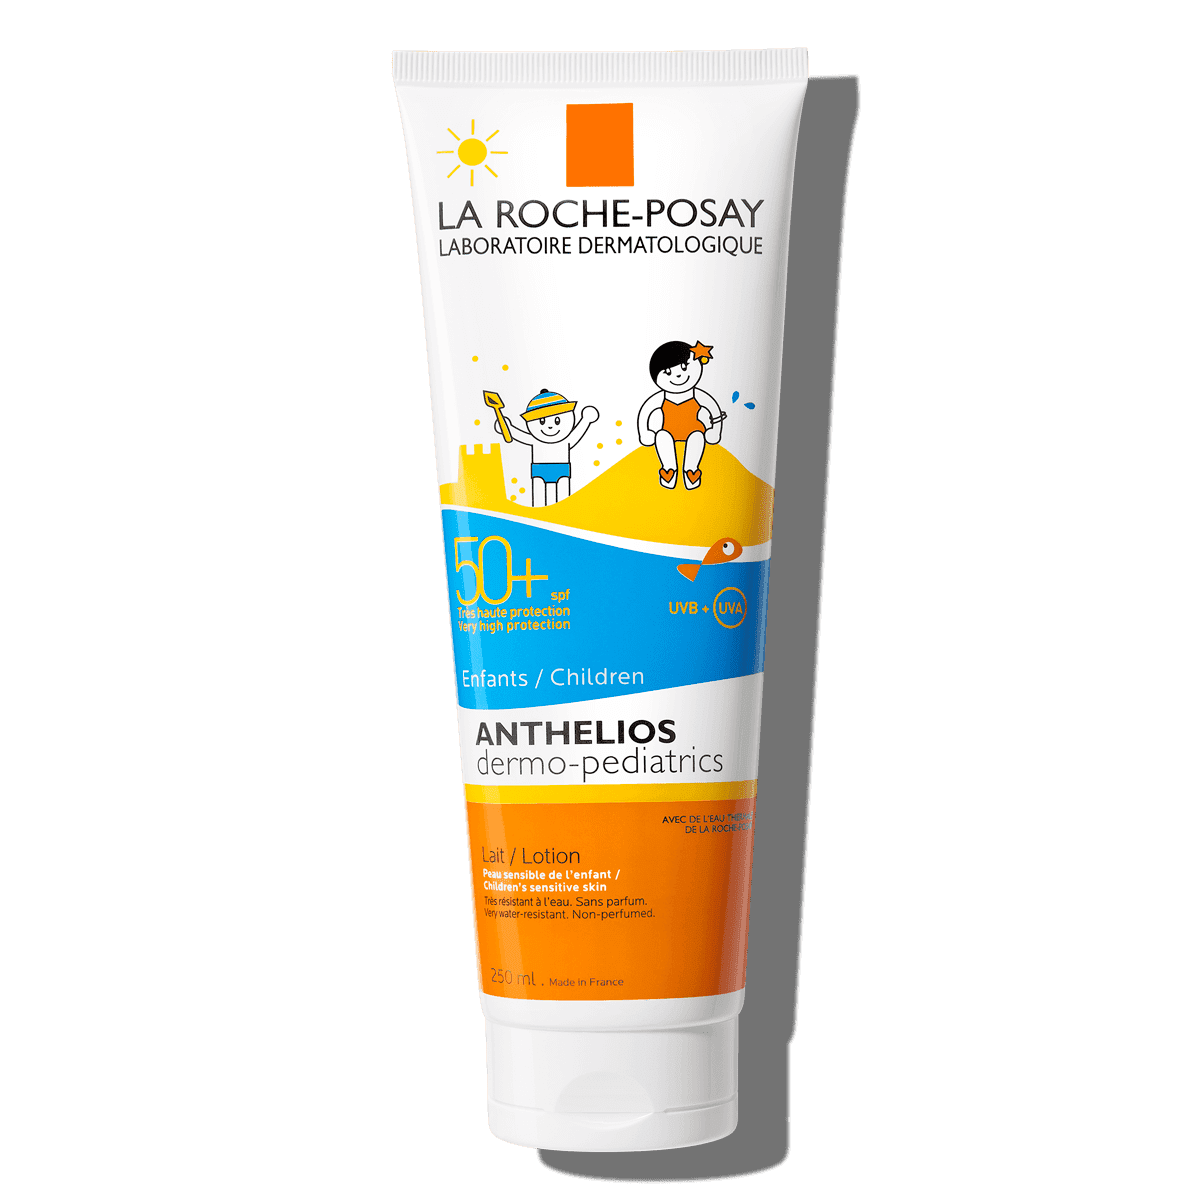 La Roche Posay ProductPage Sun Anthelios Dermo Pediatrics Spf50 Smooth